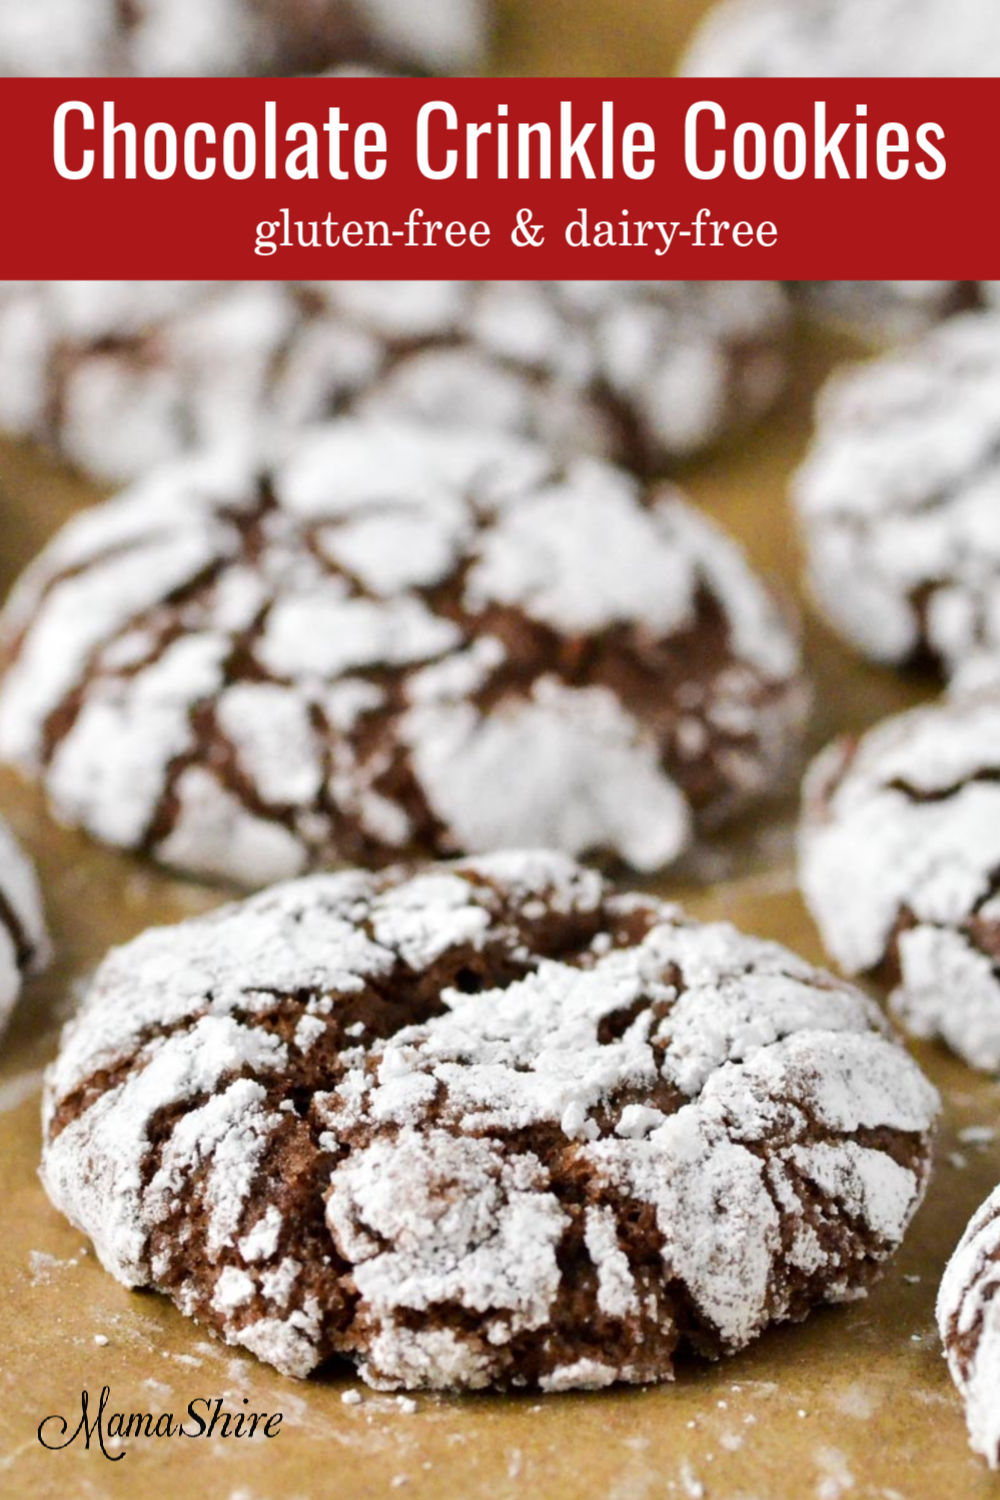 Powdered sugar covered gluten-free cookies.